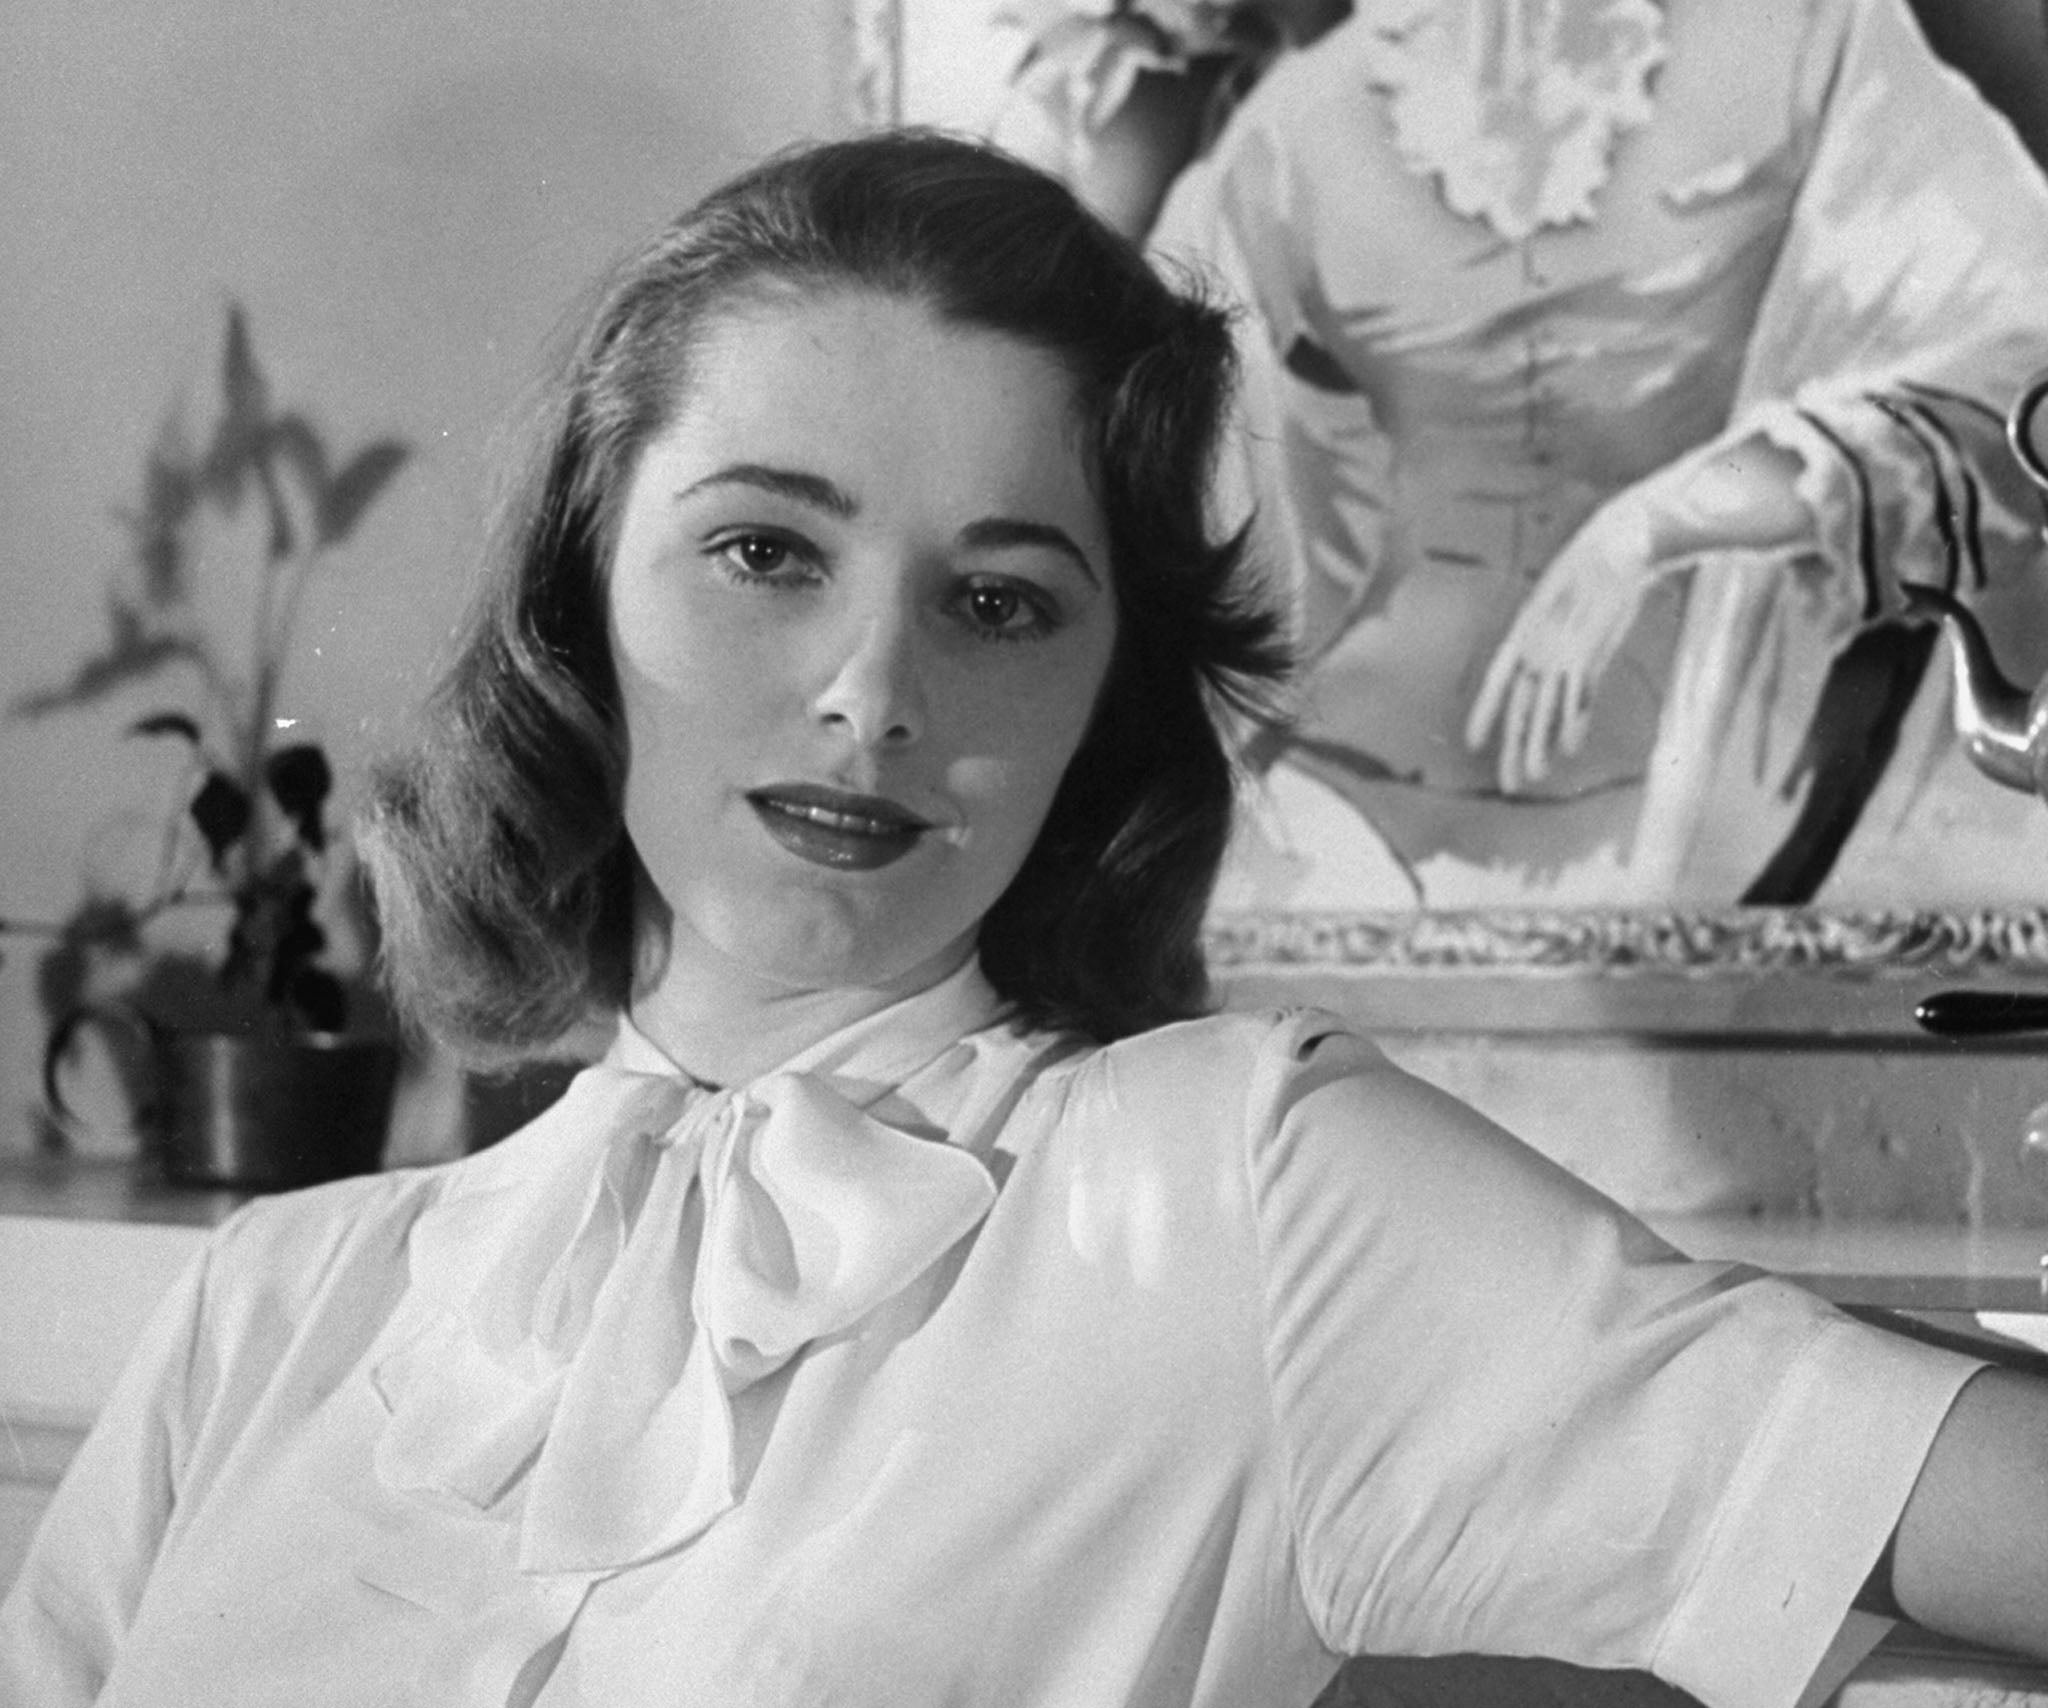 Forum on this topic: Sarah Gilman, eleanor-parker/